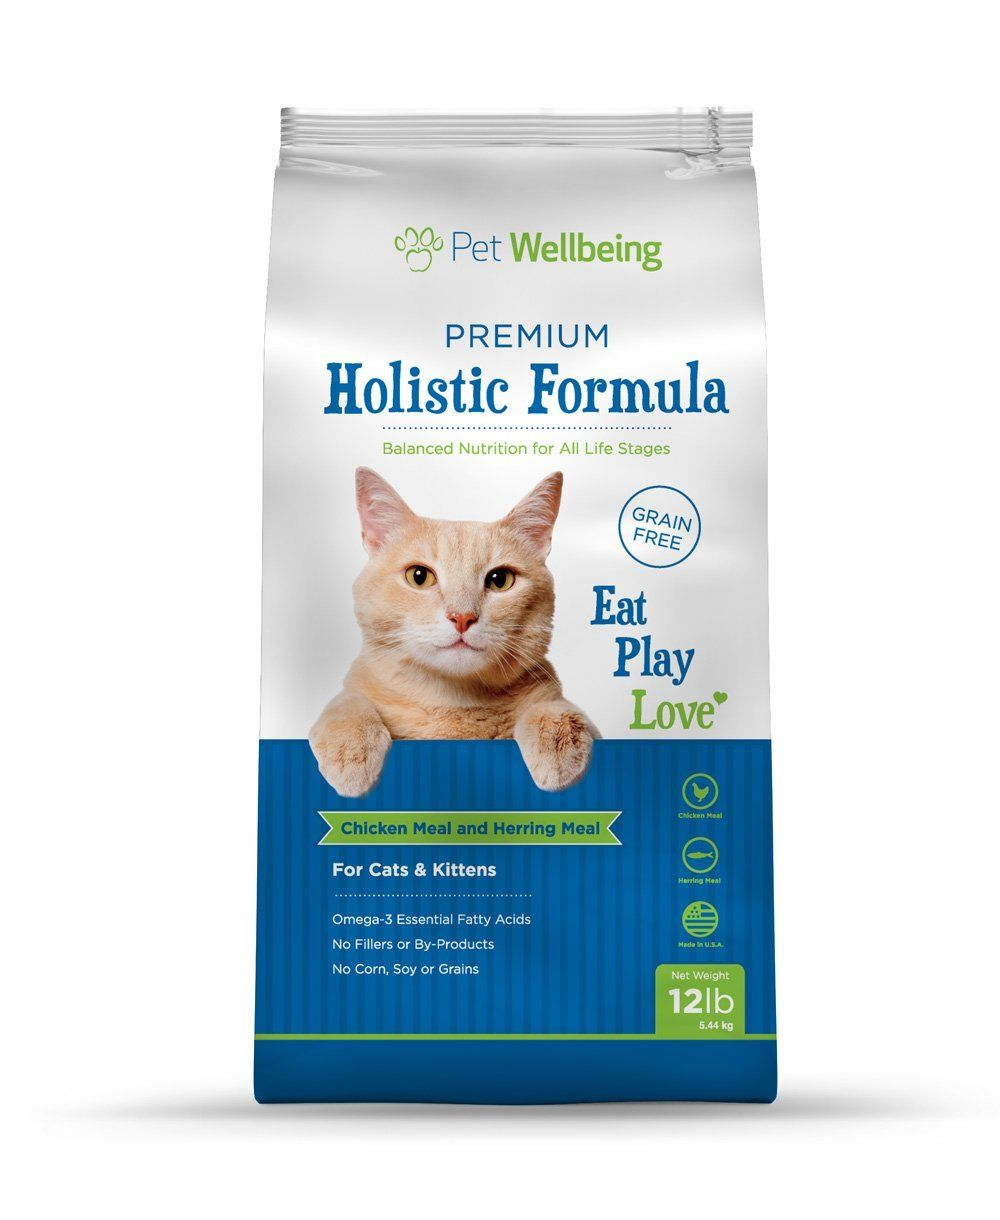 Veterinary Forumulated Premium Holistic Cat Food By Pet Wellbeing Premium Holistic Formula For Cats And Kittens Cats And Kittens Holistic Cat Food Cat Food